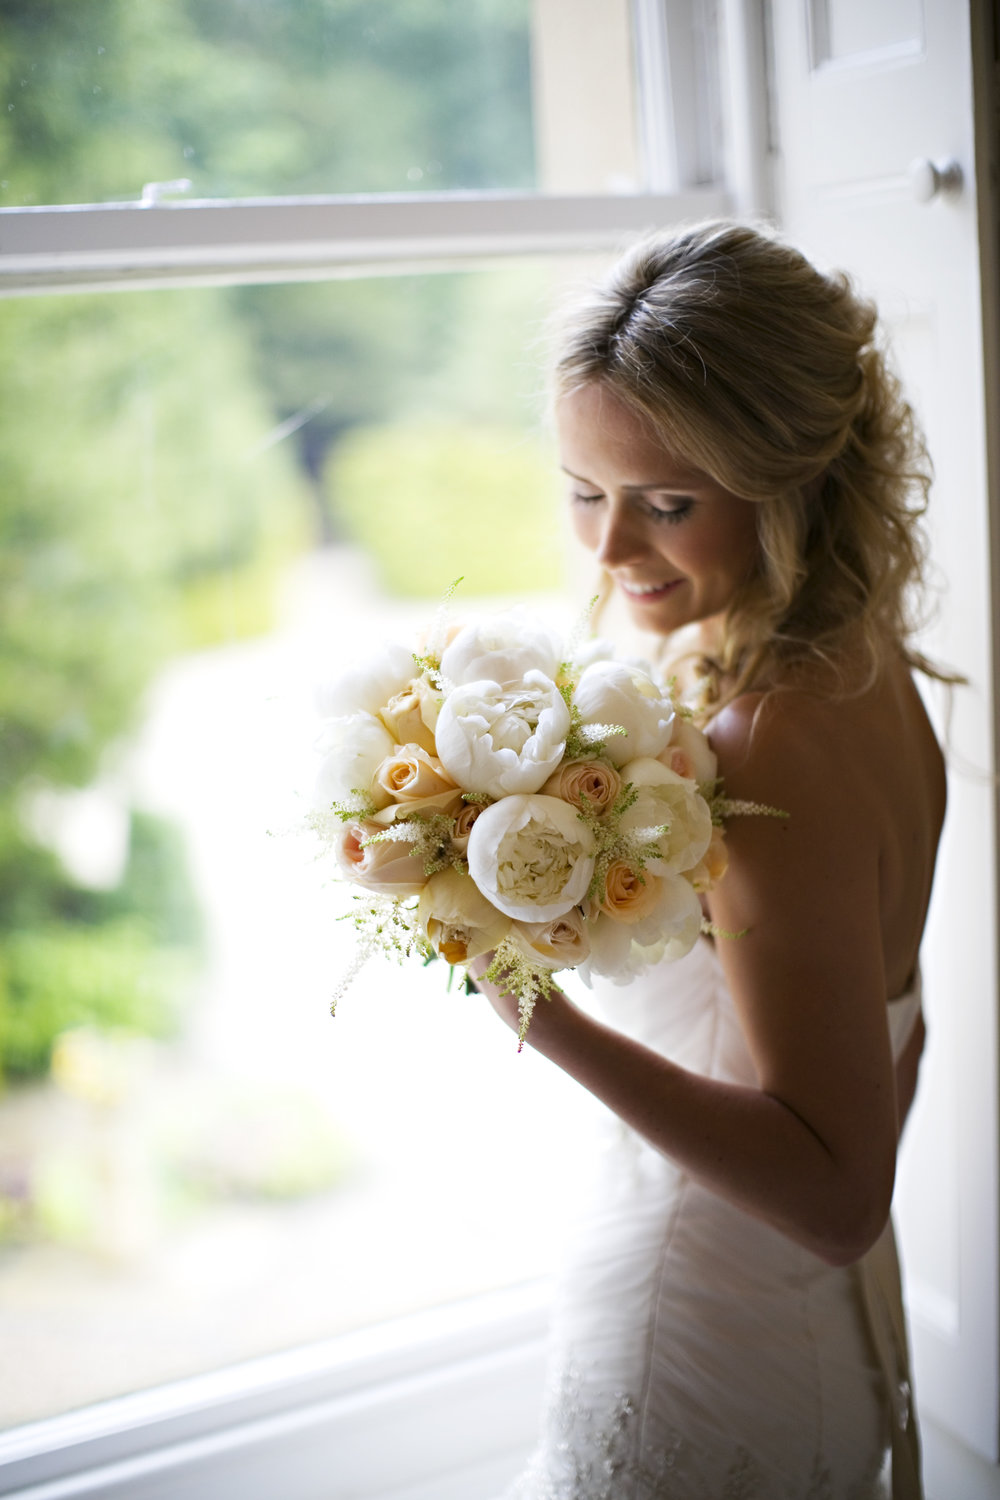 Gemma's bridal bouquet by Tineke